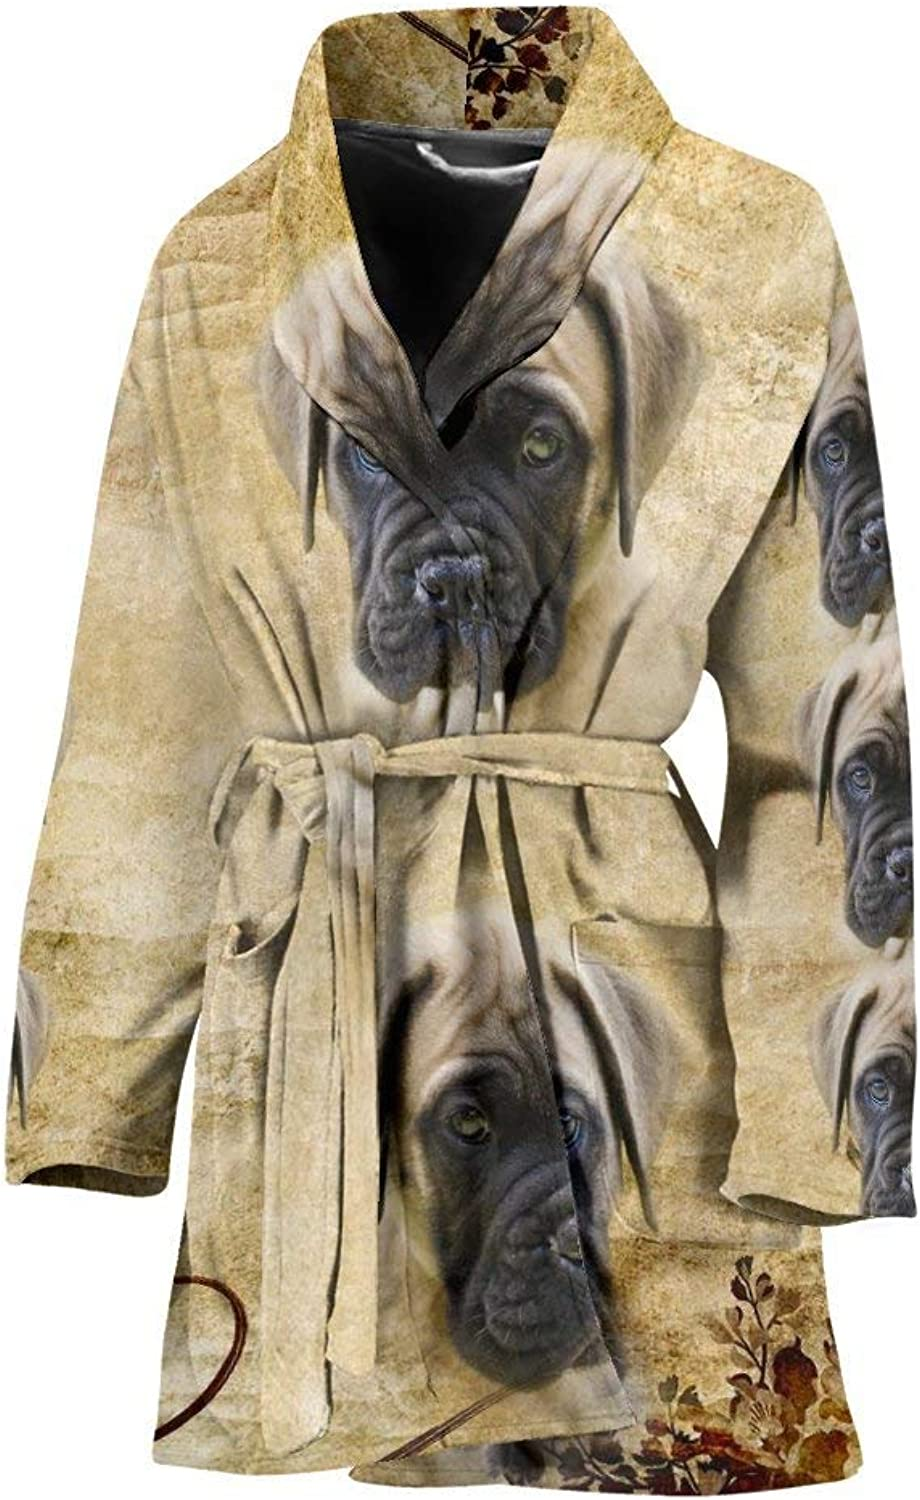 Deruj English Mastiff Puppy Print Women's Bath Robe